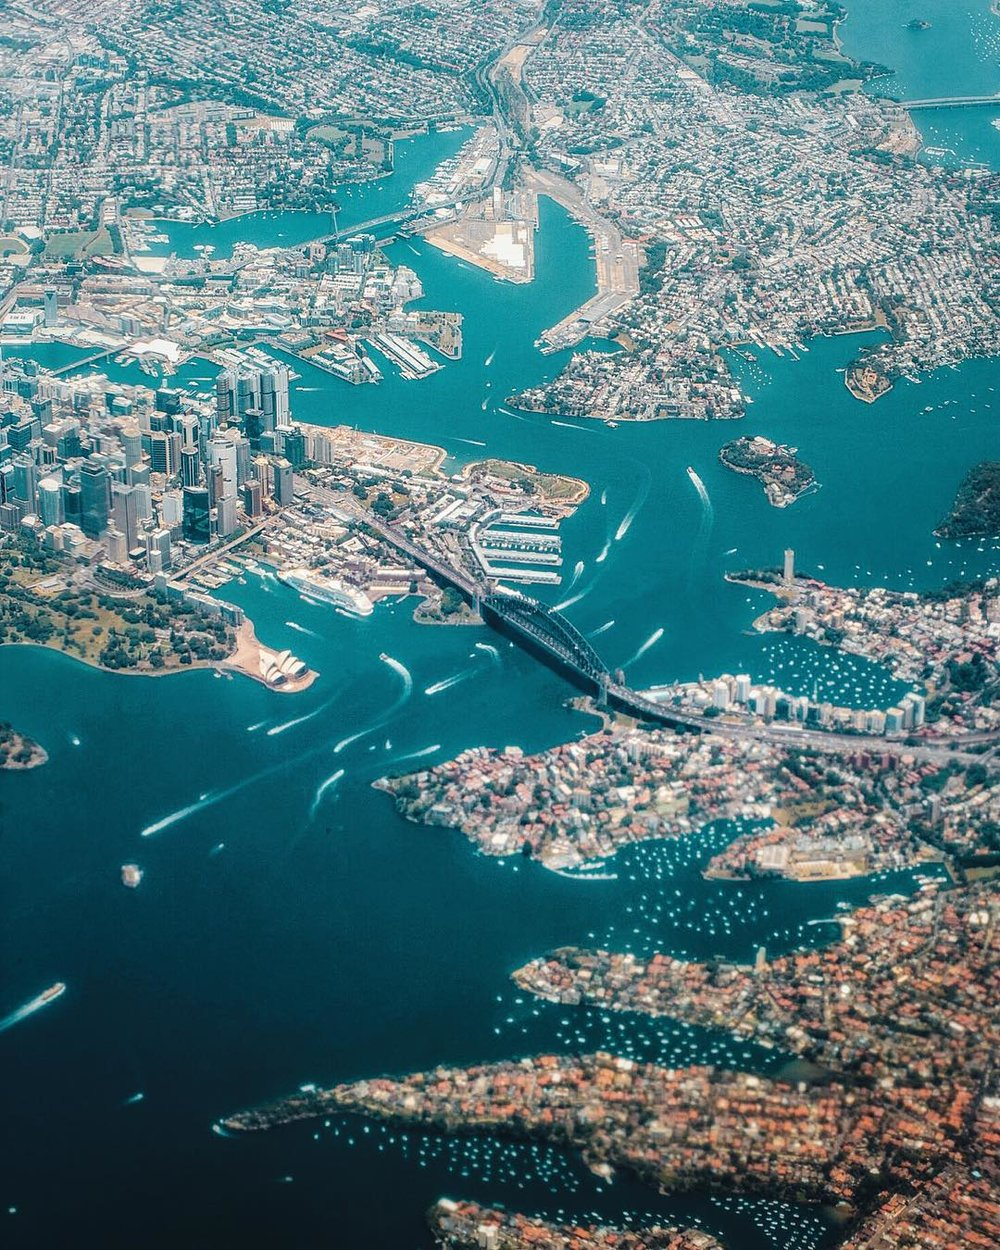 """Check out this awesome view of Sydney, Australia, taken from the window of a passenger jet leaving the city. Sydney covers a 4,775 square-mile (12,367-sq.-km) area and boasts roughly 2.5 million acres (1 million hectares) of nature reserves and parks. From this perspective, we can see many of the city's landmarks, including the Sydney Harbour Bridge, Sydney Opera House, Royal Botanic Gardens, Sydney Observatory, and others.  33°51'09.7""""S, 151°12'38.3""""E  Source imagery: Walt Loveridge"""